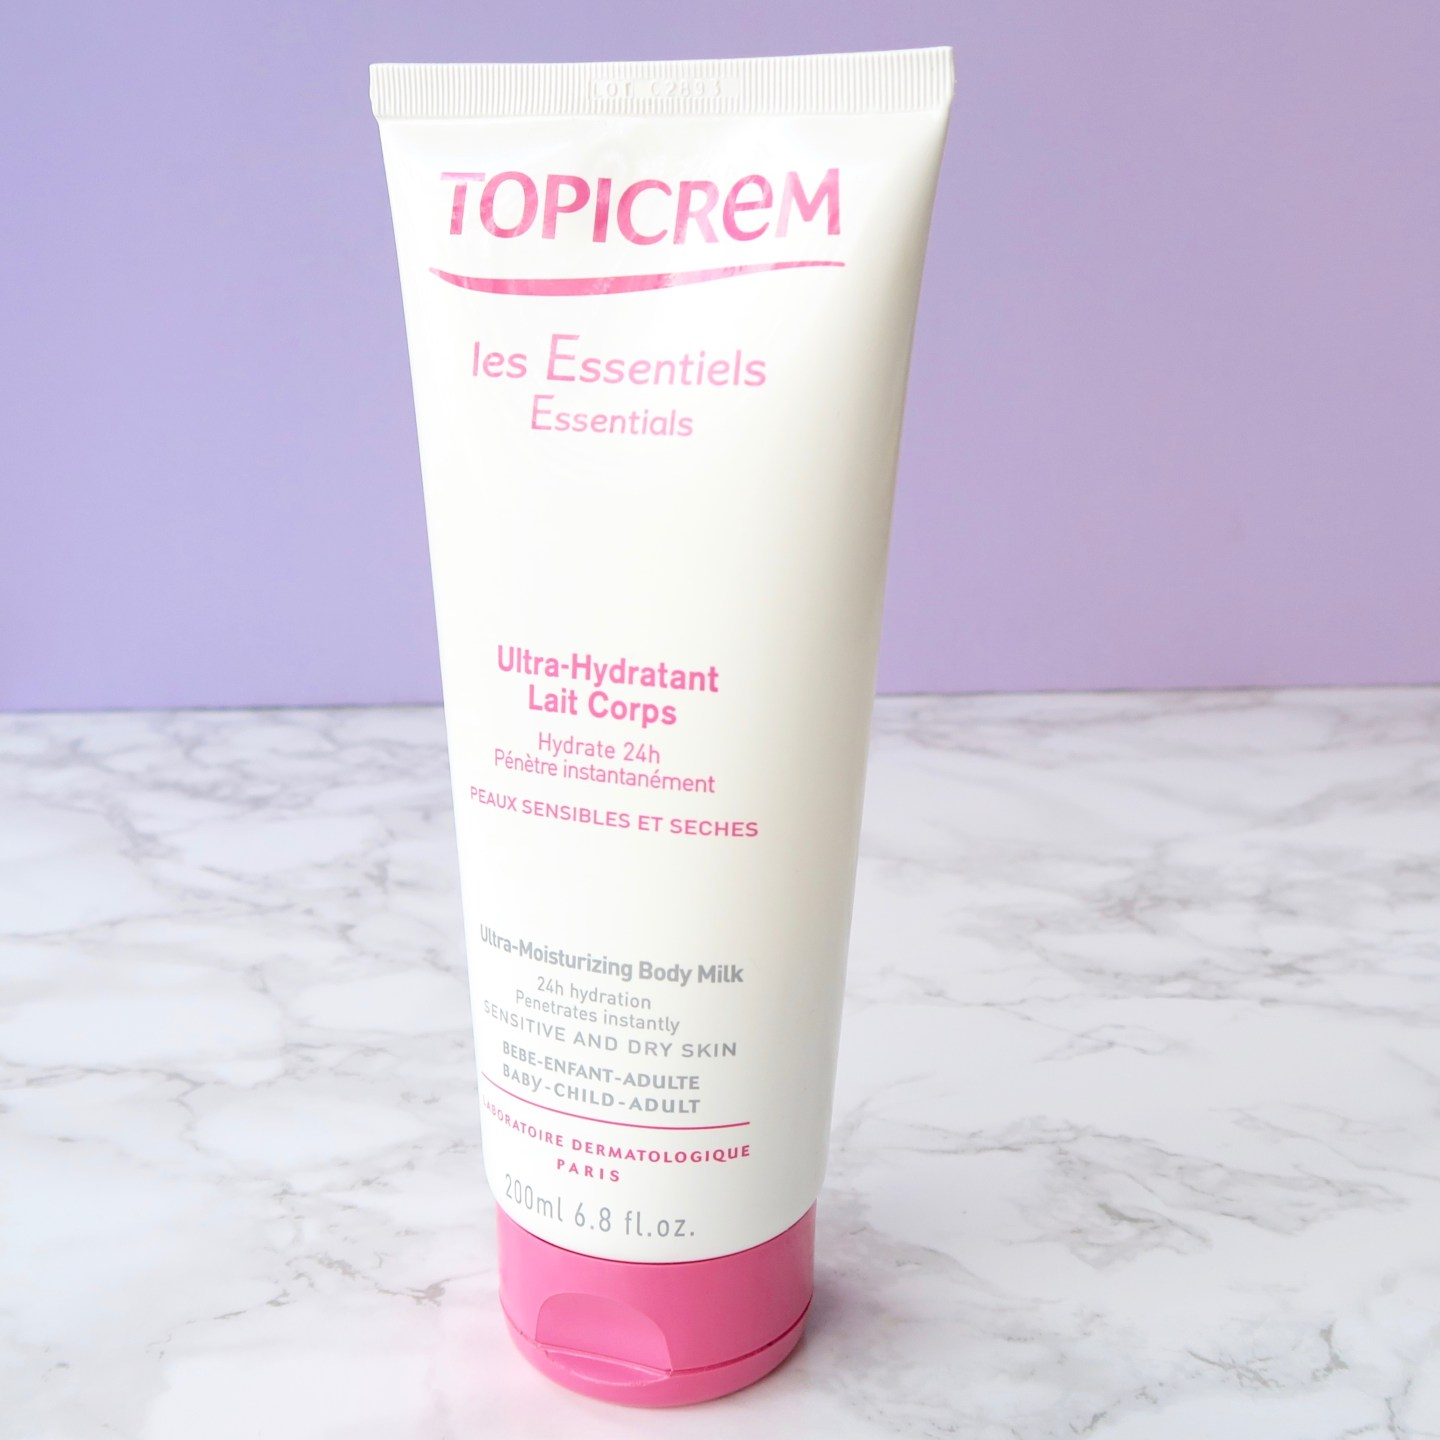 Friday Faves - Topicrem, a great body moisturiser for sensitive skin